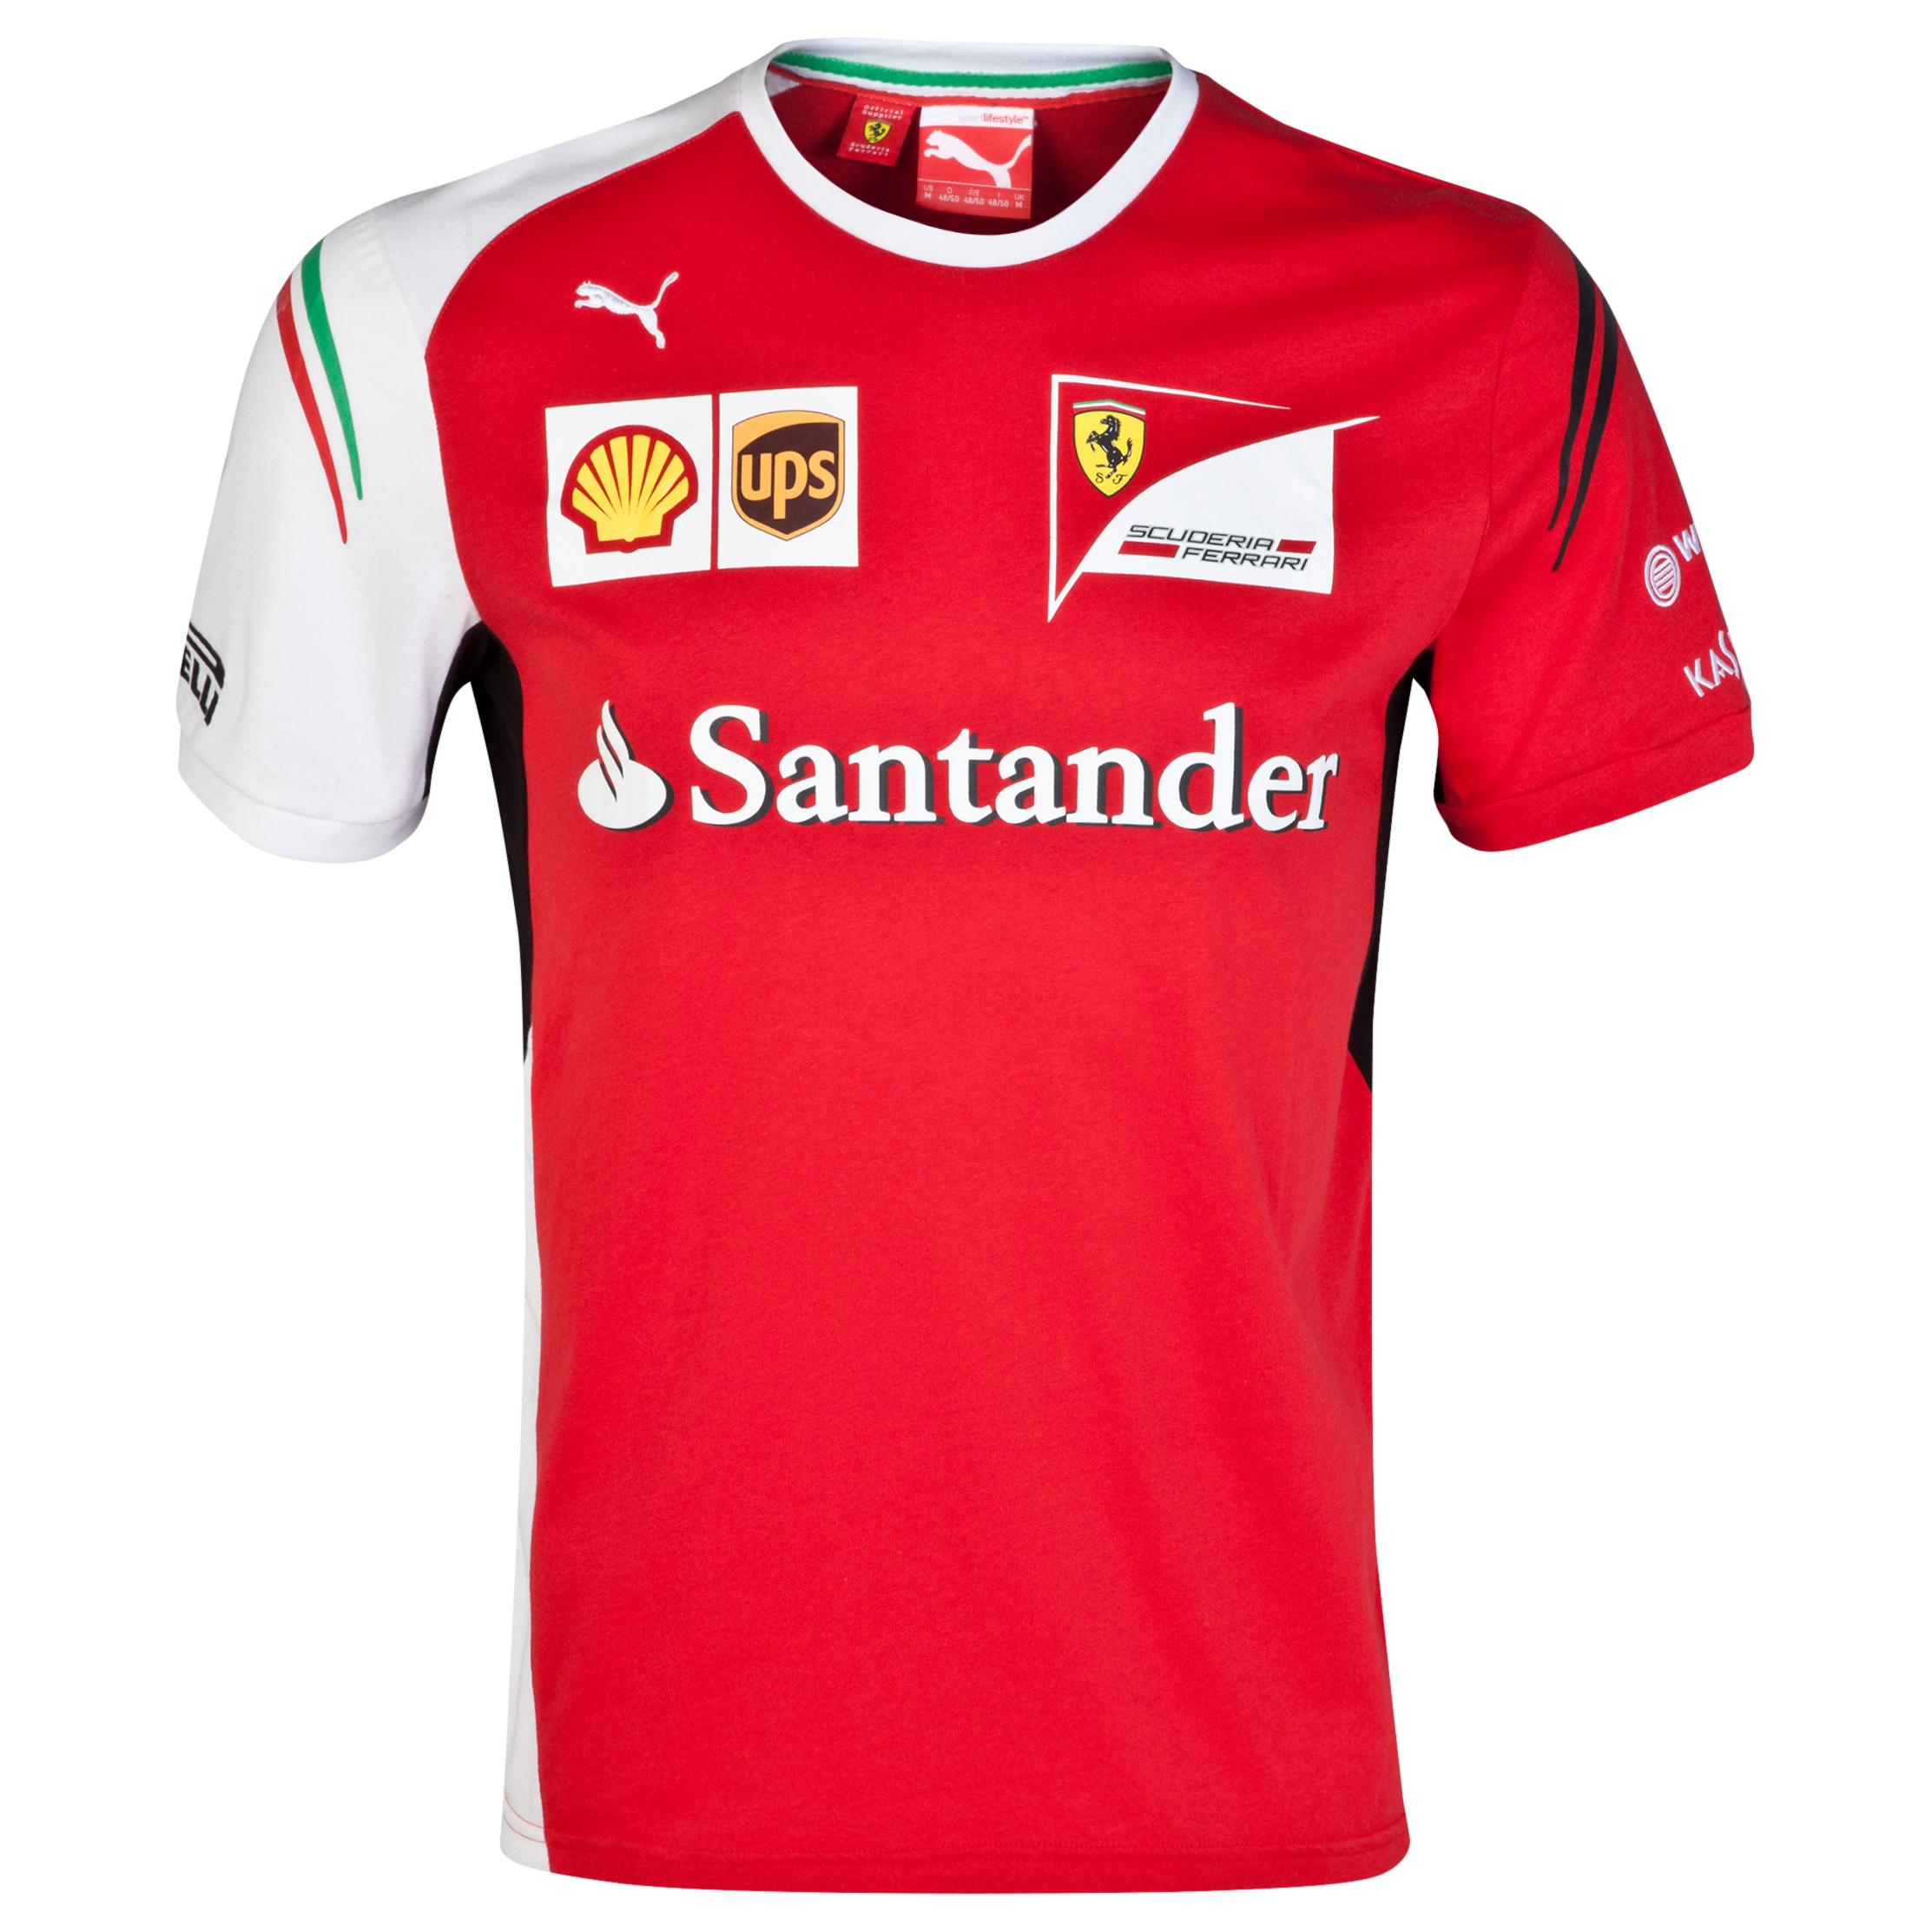 Scuderia Ferrari Team T-Shirt Red